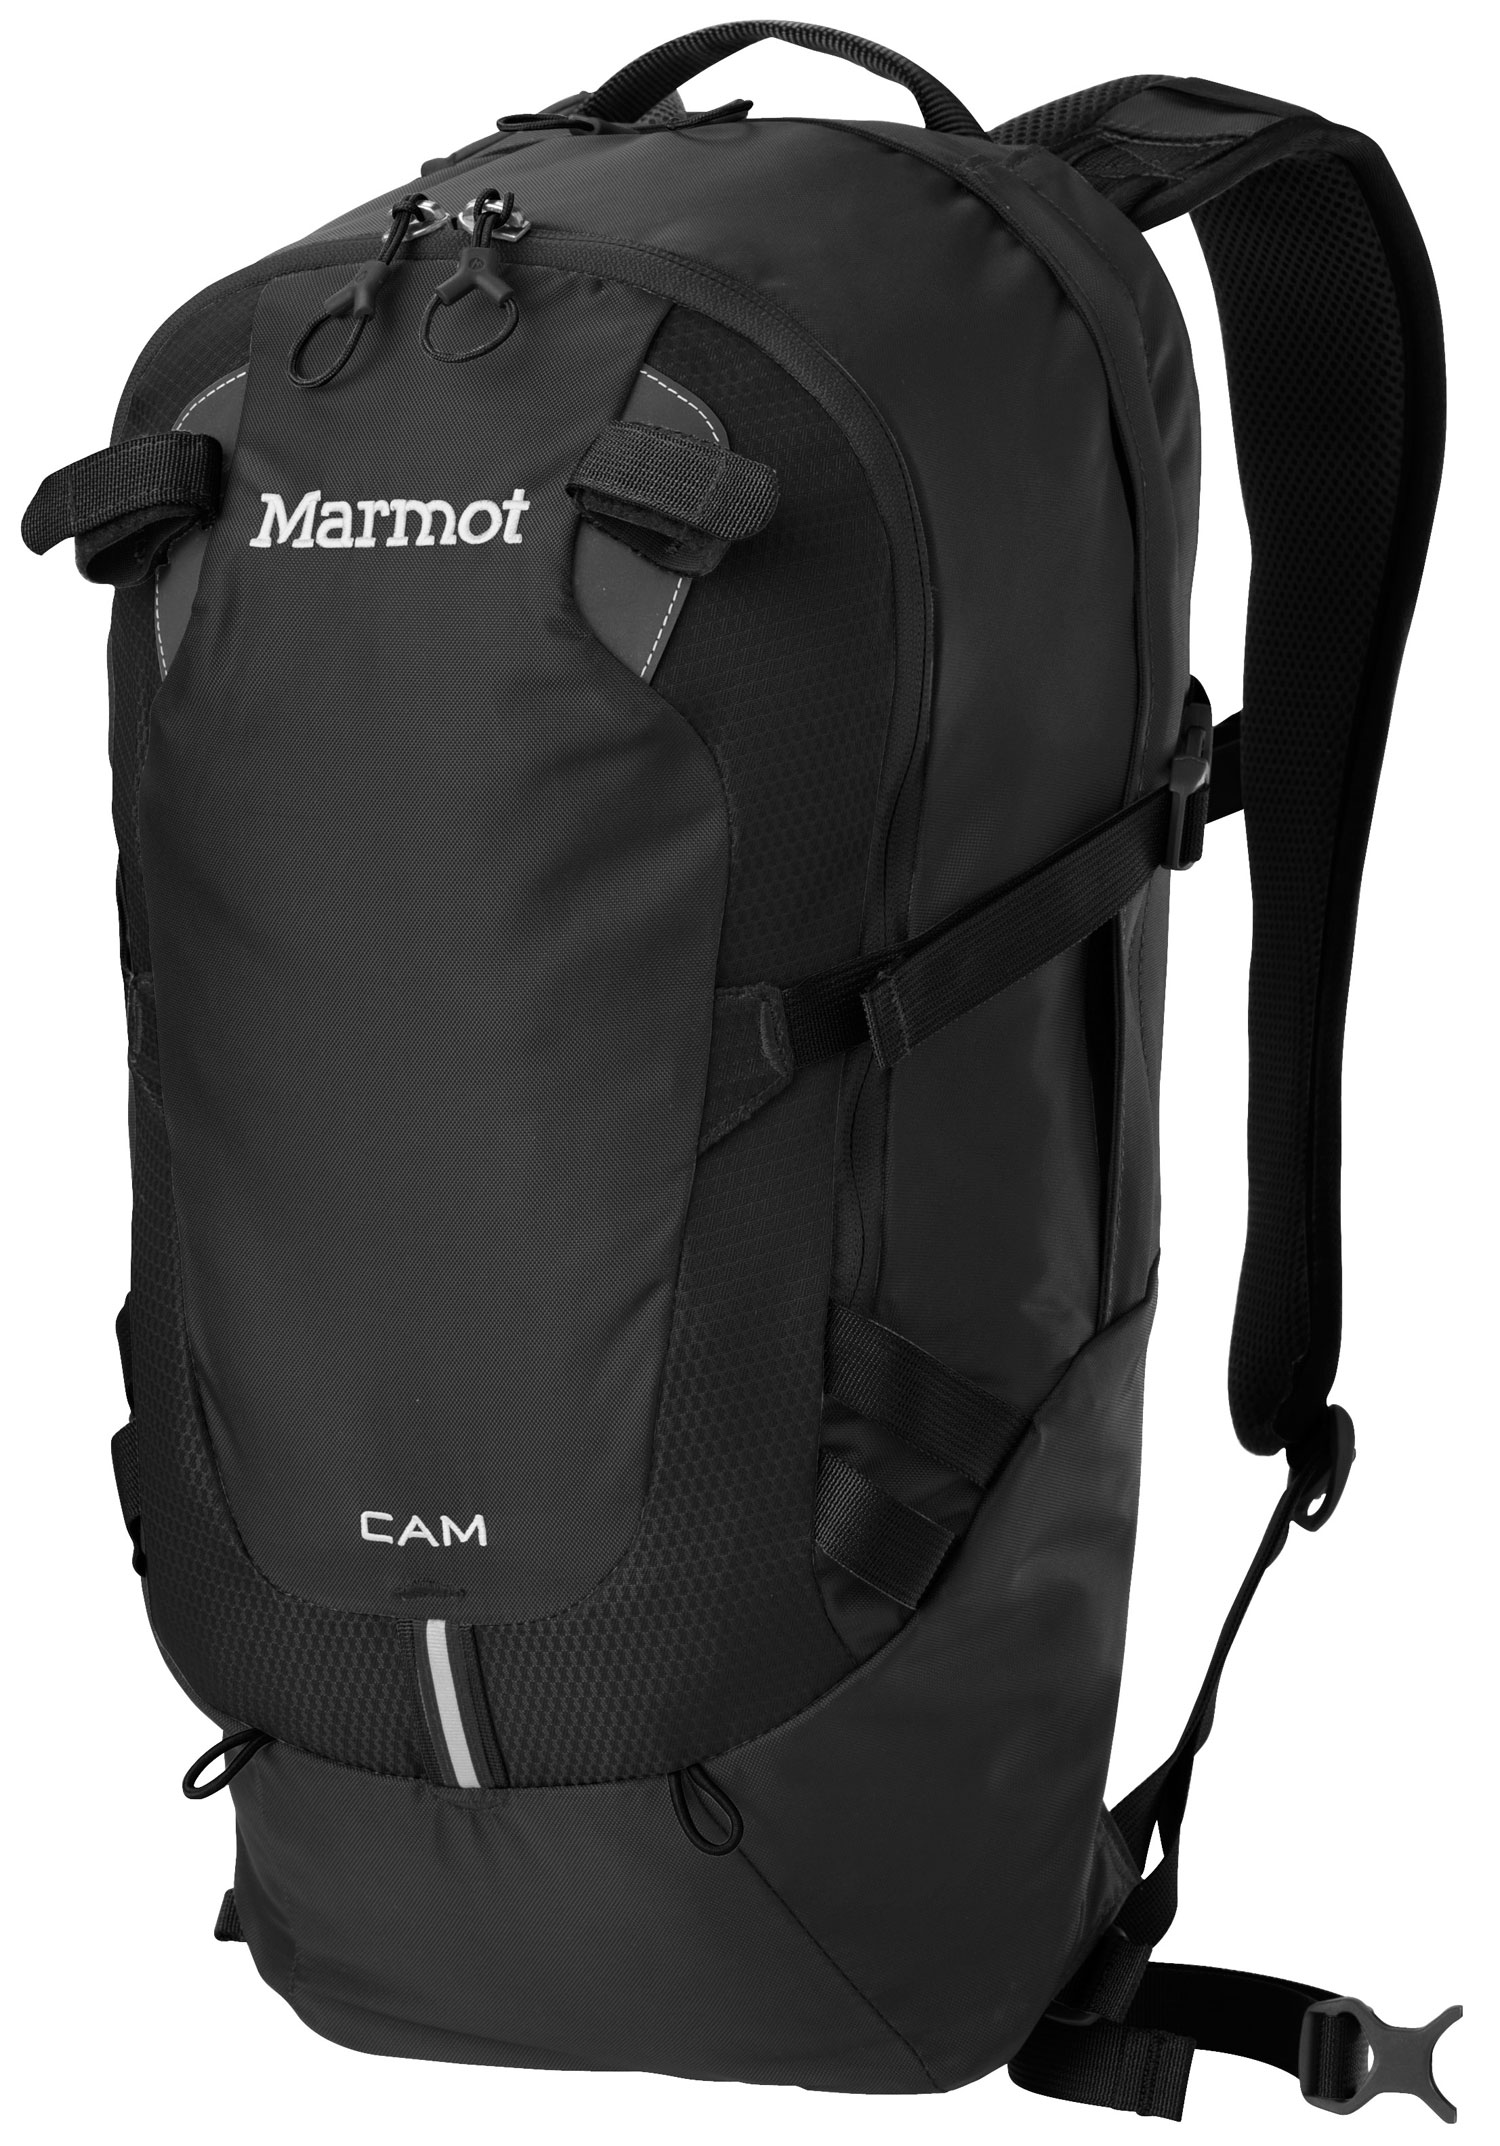 "Key Features of the Marmot Cam 15 15L Backpack: Materials 420d High Tenacity Nylon Reinforcement 420d High Tenacity Nylon, Double Bottom Weight 1lbs 8.5oz (695g) Volume 920ci » 15 liters Extremely Durable 420 Denier Oxford Weave Nylon Double Layered Bottom of Pack for Added Abrasion Resistance and Increased Durability Spacer Airmesh Back Panel and Shoulder Straps for Added Comfort and Breathability Padded Laptop Sleeve Fits Most 13"" Computers Clipping Points with Reflective Tape Internal Organizer Front Pocket with Key Clip Elastic Leash for Trekking Pole(s) Hydration Port and Clip for Hanging Reservoir Clipping Points on Shoulder Straps Removable Webbing Waist Belt Water Bottle Pockets Compression Straps to Evenly Distribute Load - $79.95"